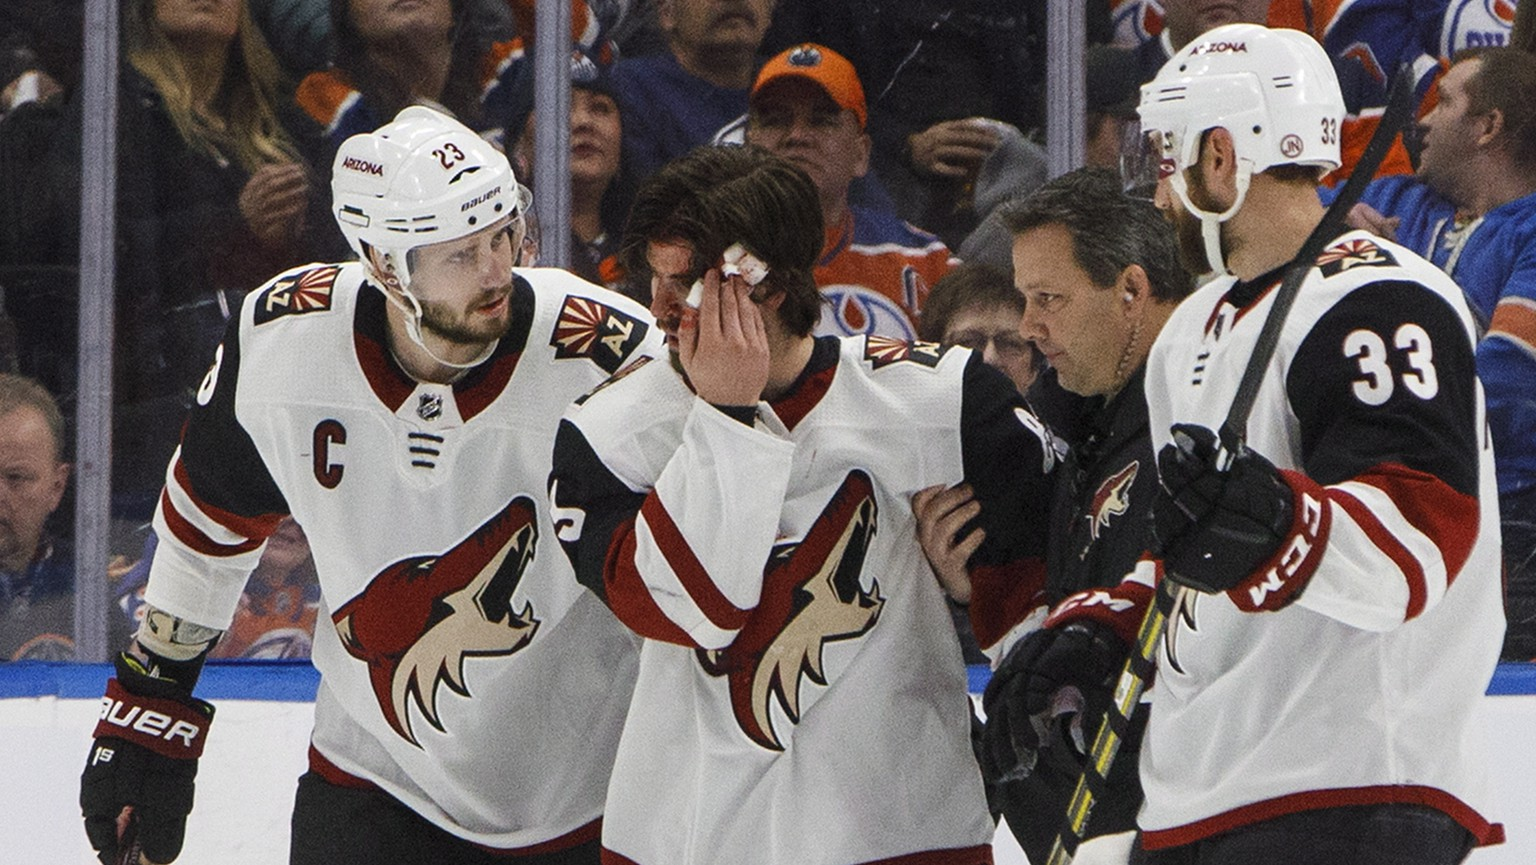 Arizona Coyotes' Conor Garland (83) is helped off the ice after taking a puck to the head during the second period of an NHL hockey game against the Edmonton Oilers on Saturday, Jan. 12, 2019, in Edmonton Alberta. (Jason Franson/The Canadian Press via AP)